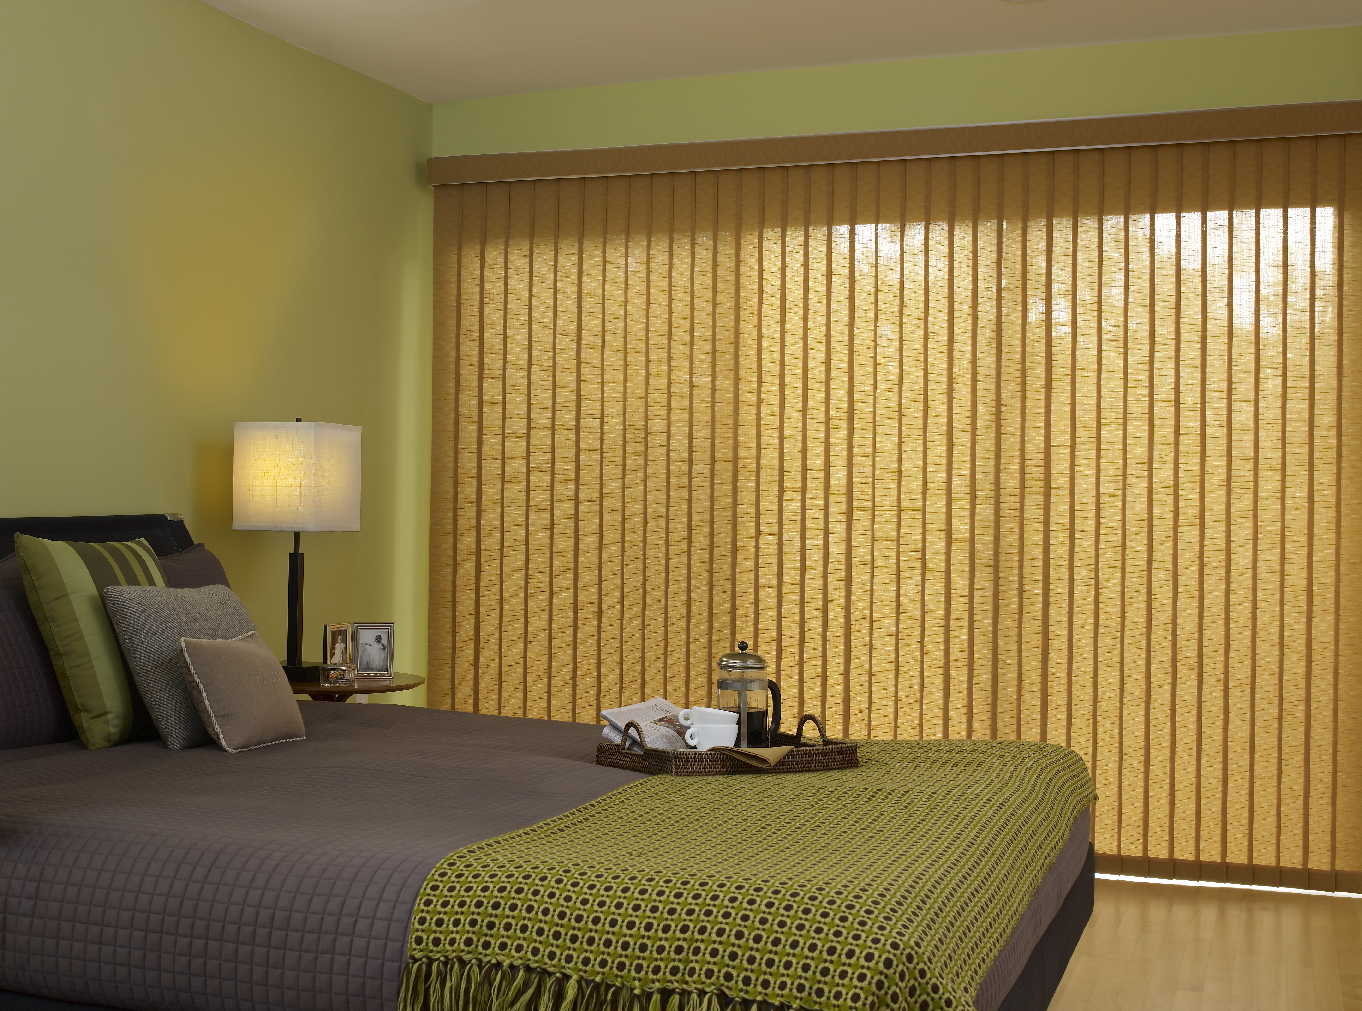 Bedroom Blinds Ideas Set Property vertical blinds - 3 blind mice window coverings